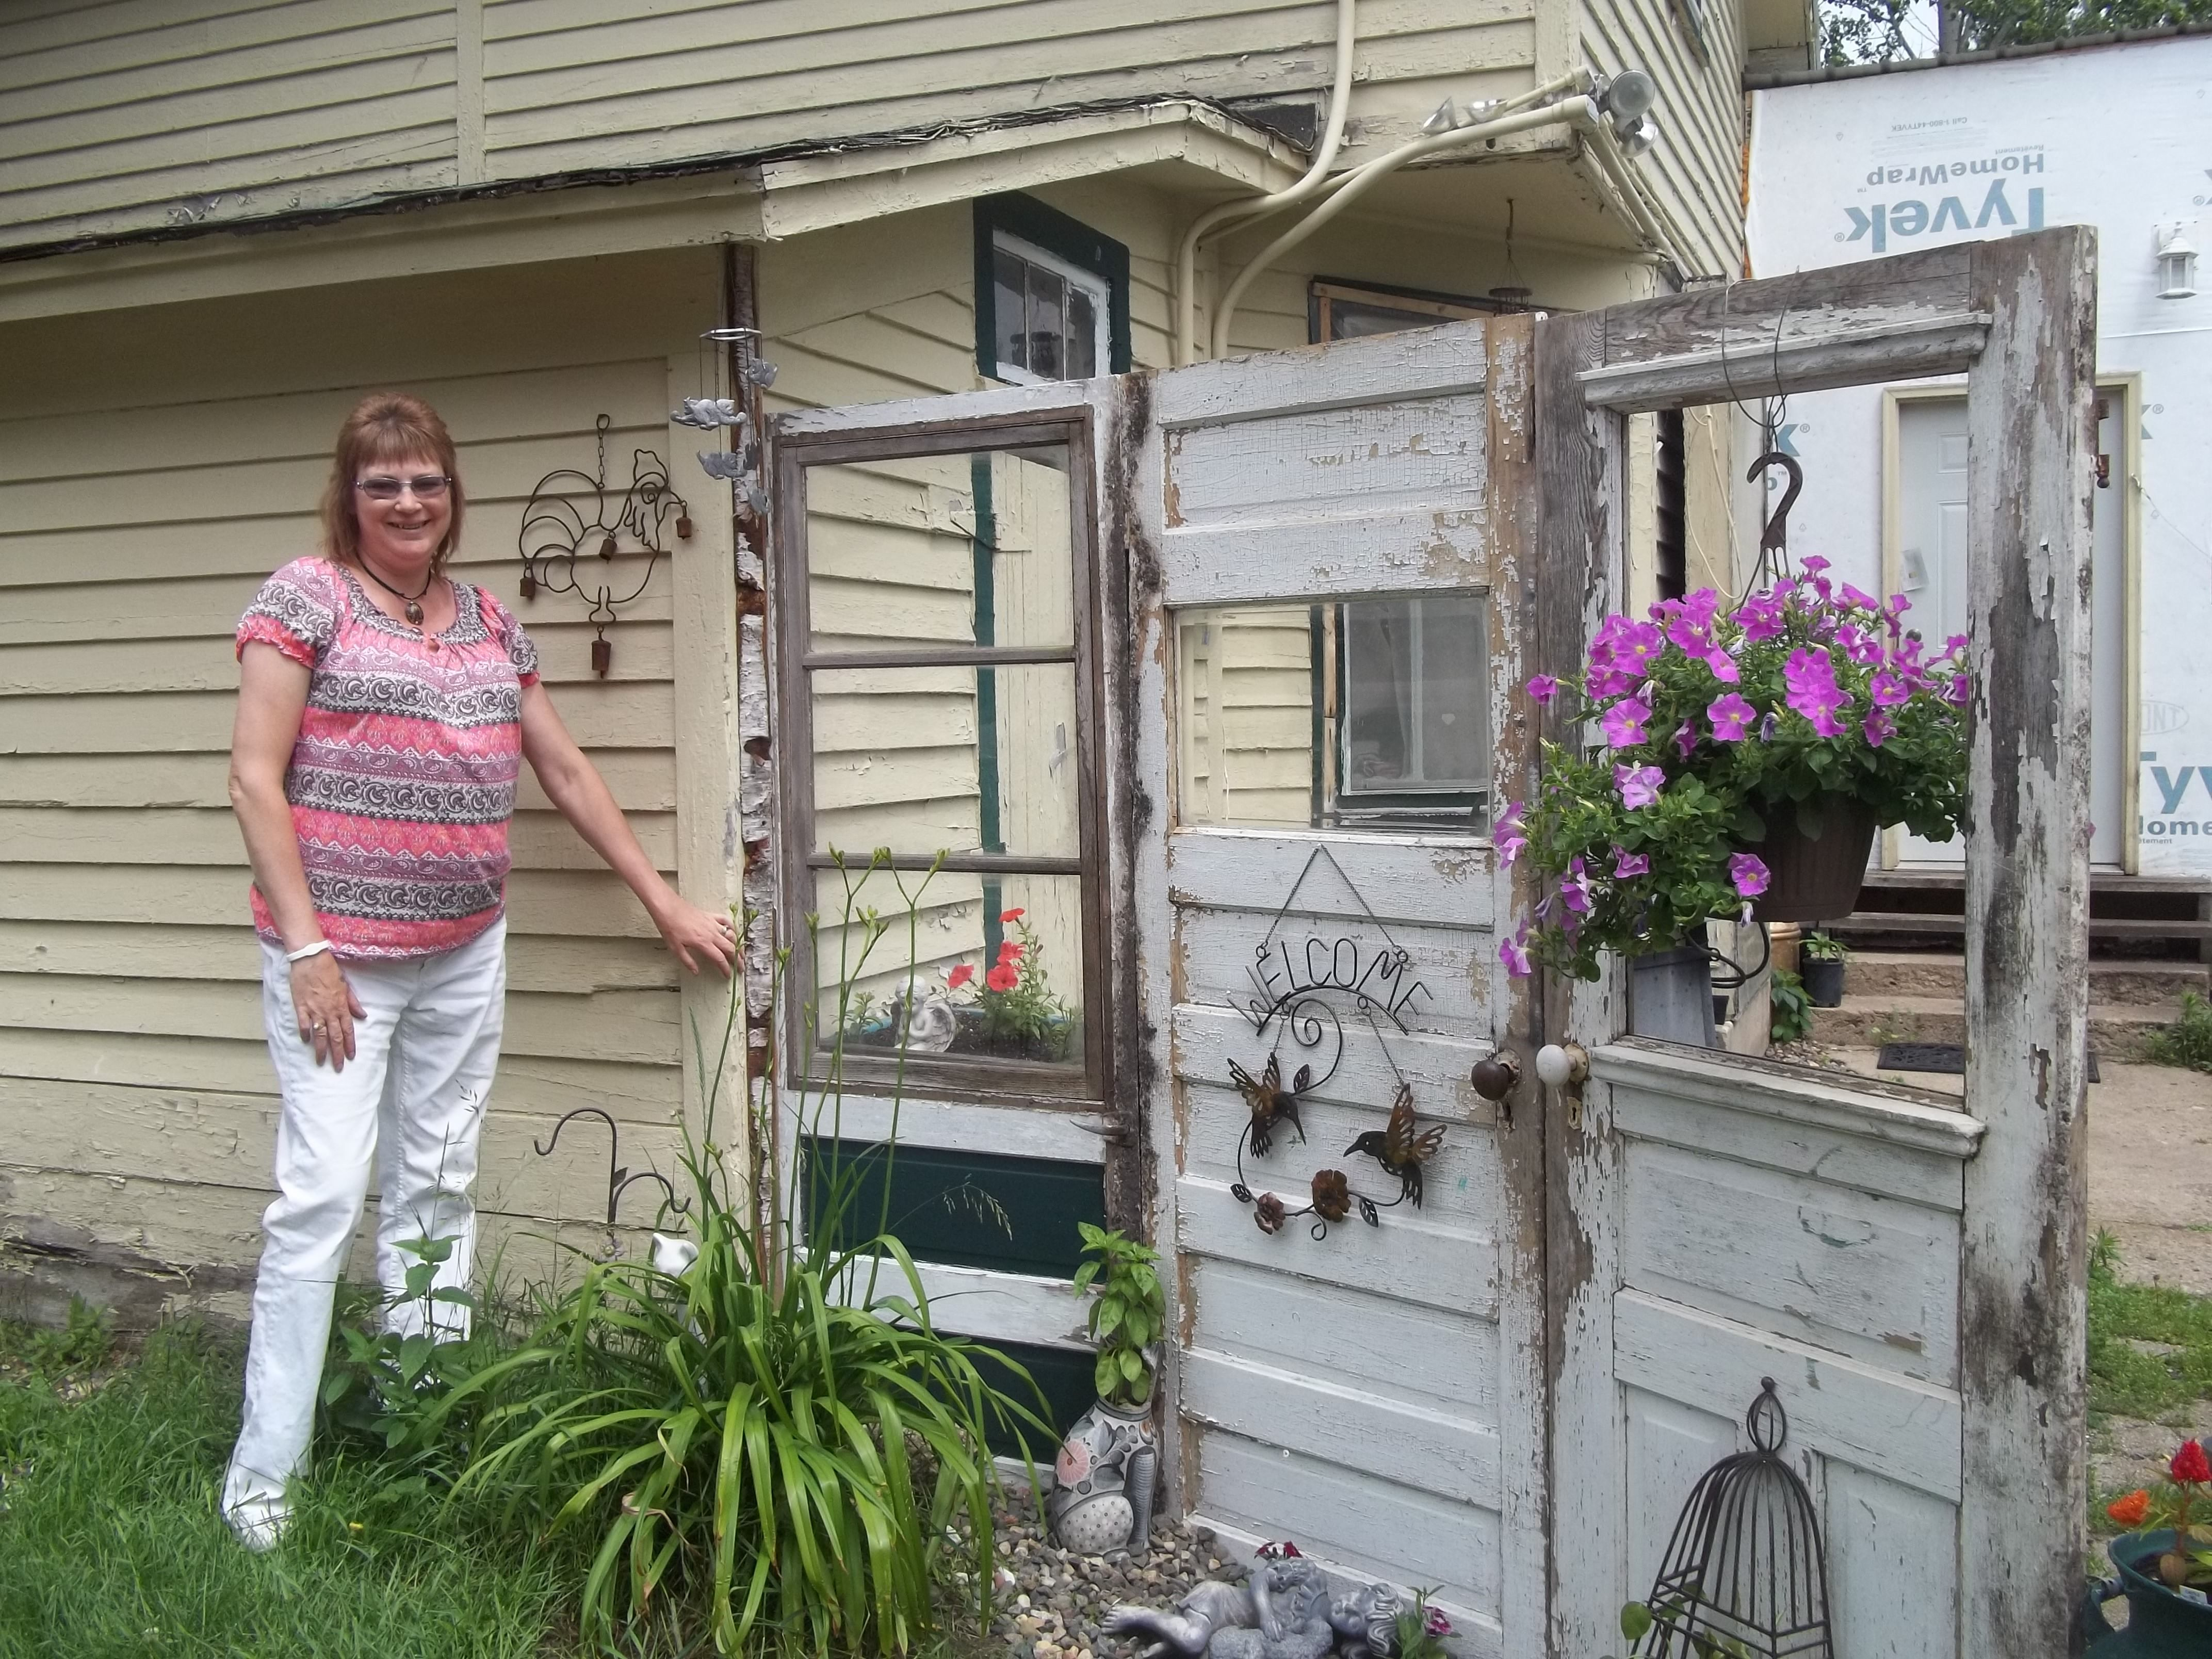 Old window ideas for outside  how to make a privacy fence  for the home  pinterest  privacy